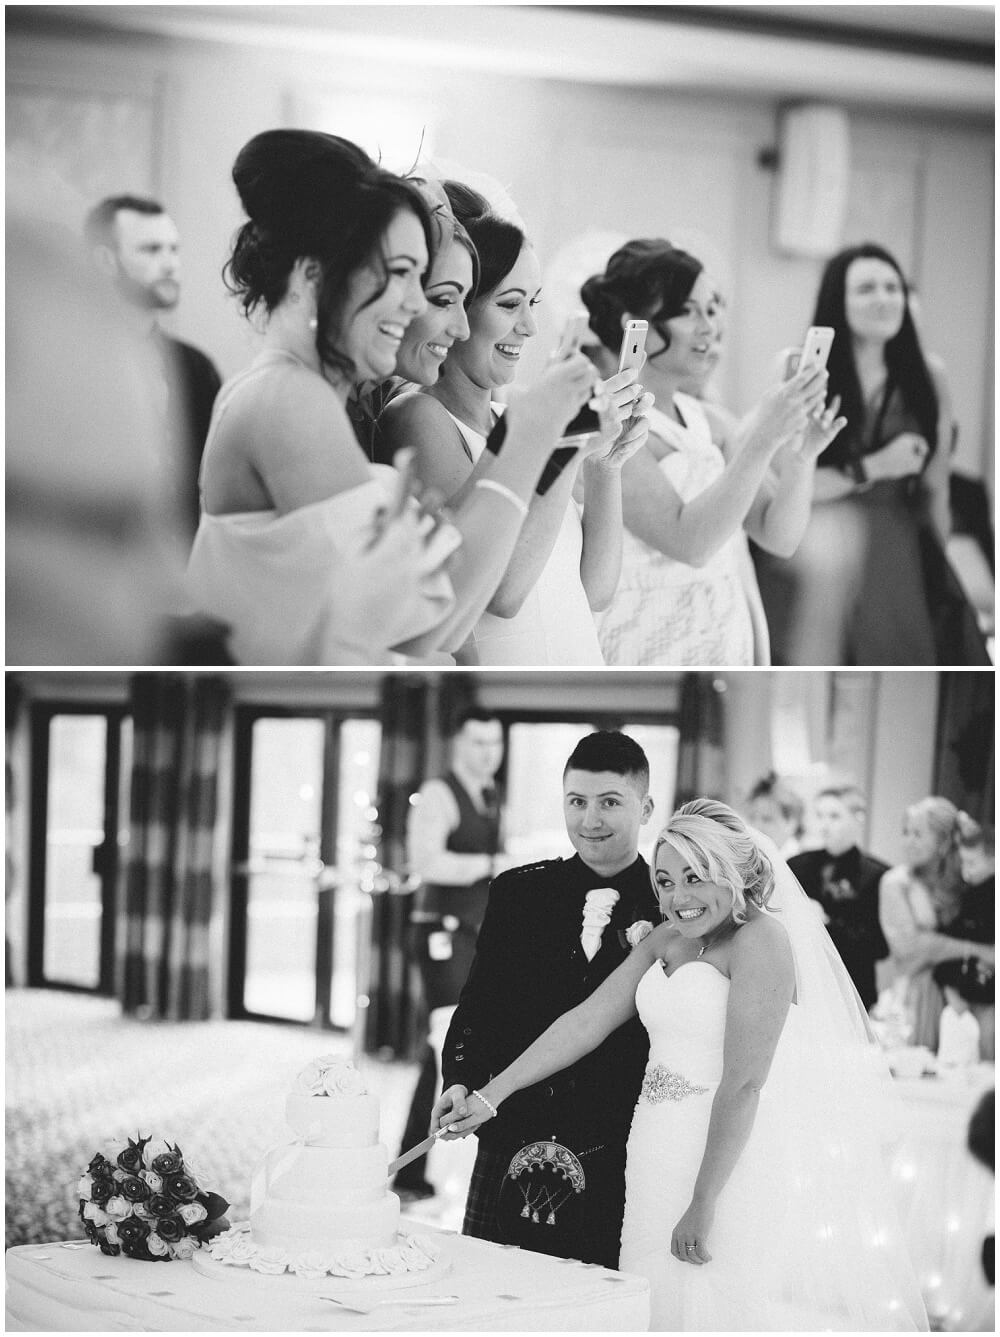 Wedding, Photography, photographer, barlanark, snaps, pics, photo, bride, groom, dress, kilts, kelly, kevin, munn, dalziel park, barlanark, st judes, glasgow, motherwell, carfin, cleland, lisini group, lanarkshire, scotland, fun, black and white, love, romance, marriage, vows, cake